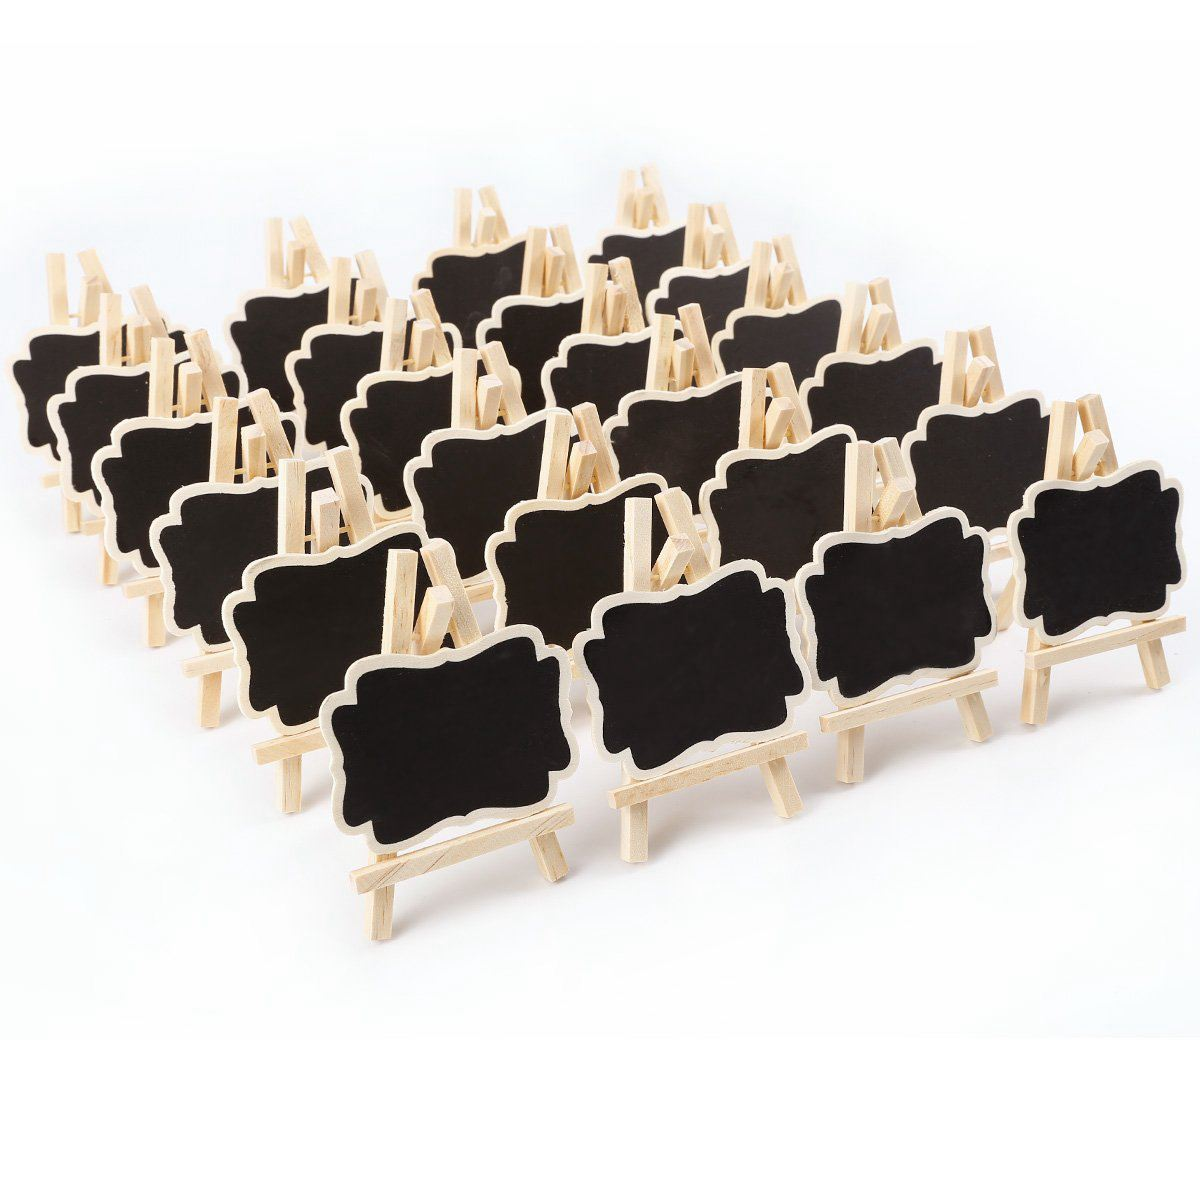 24 PCS Mini Wooden Blackboard Message Rectangular Slate Board Cards memo label Signs Price Digit Table24 PCS Mini Wooden Blackboard Message Rectangular Slate Board Cards memo label Signs Price Digit Table